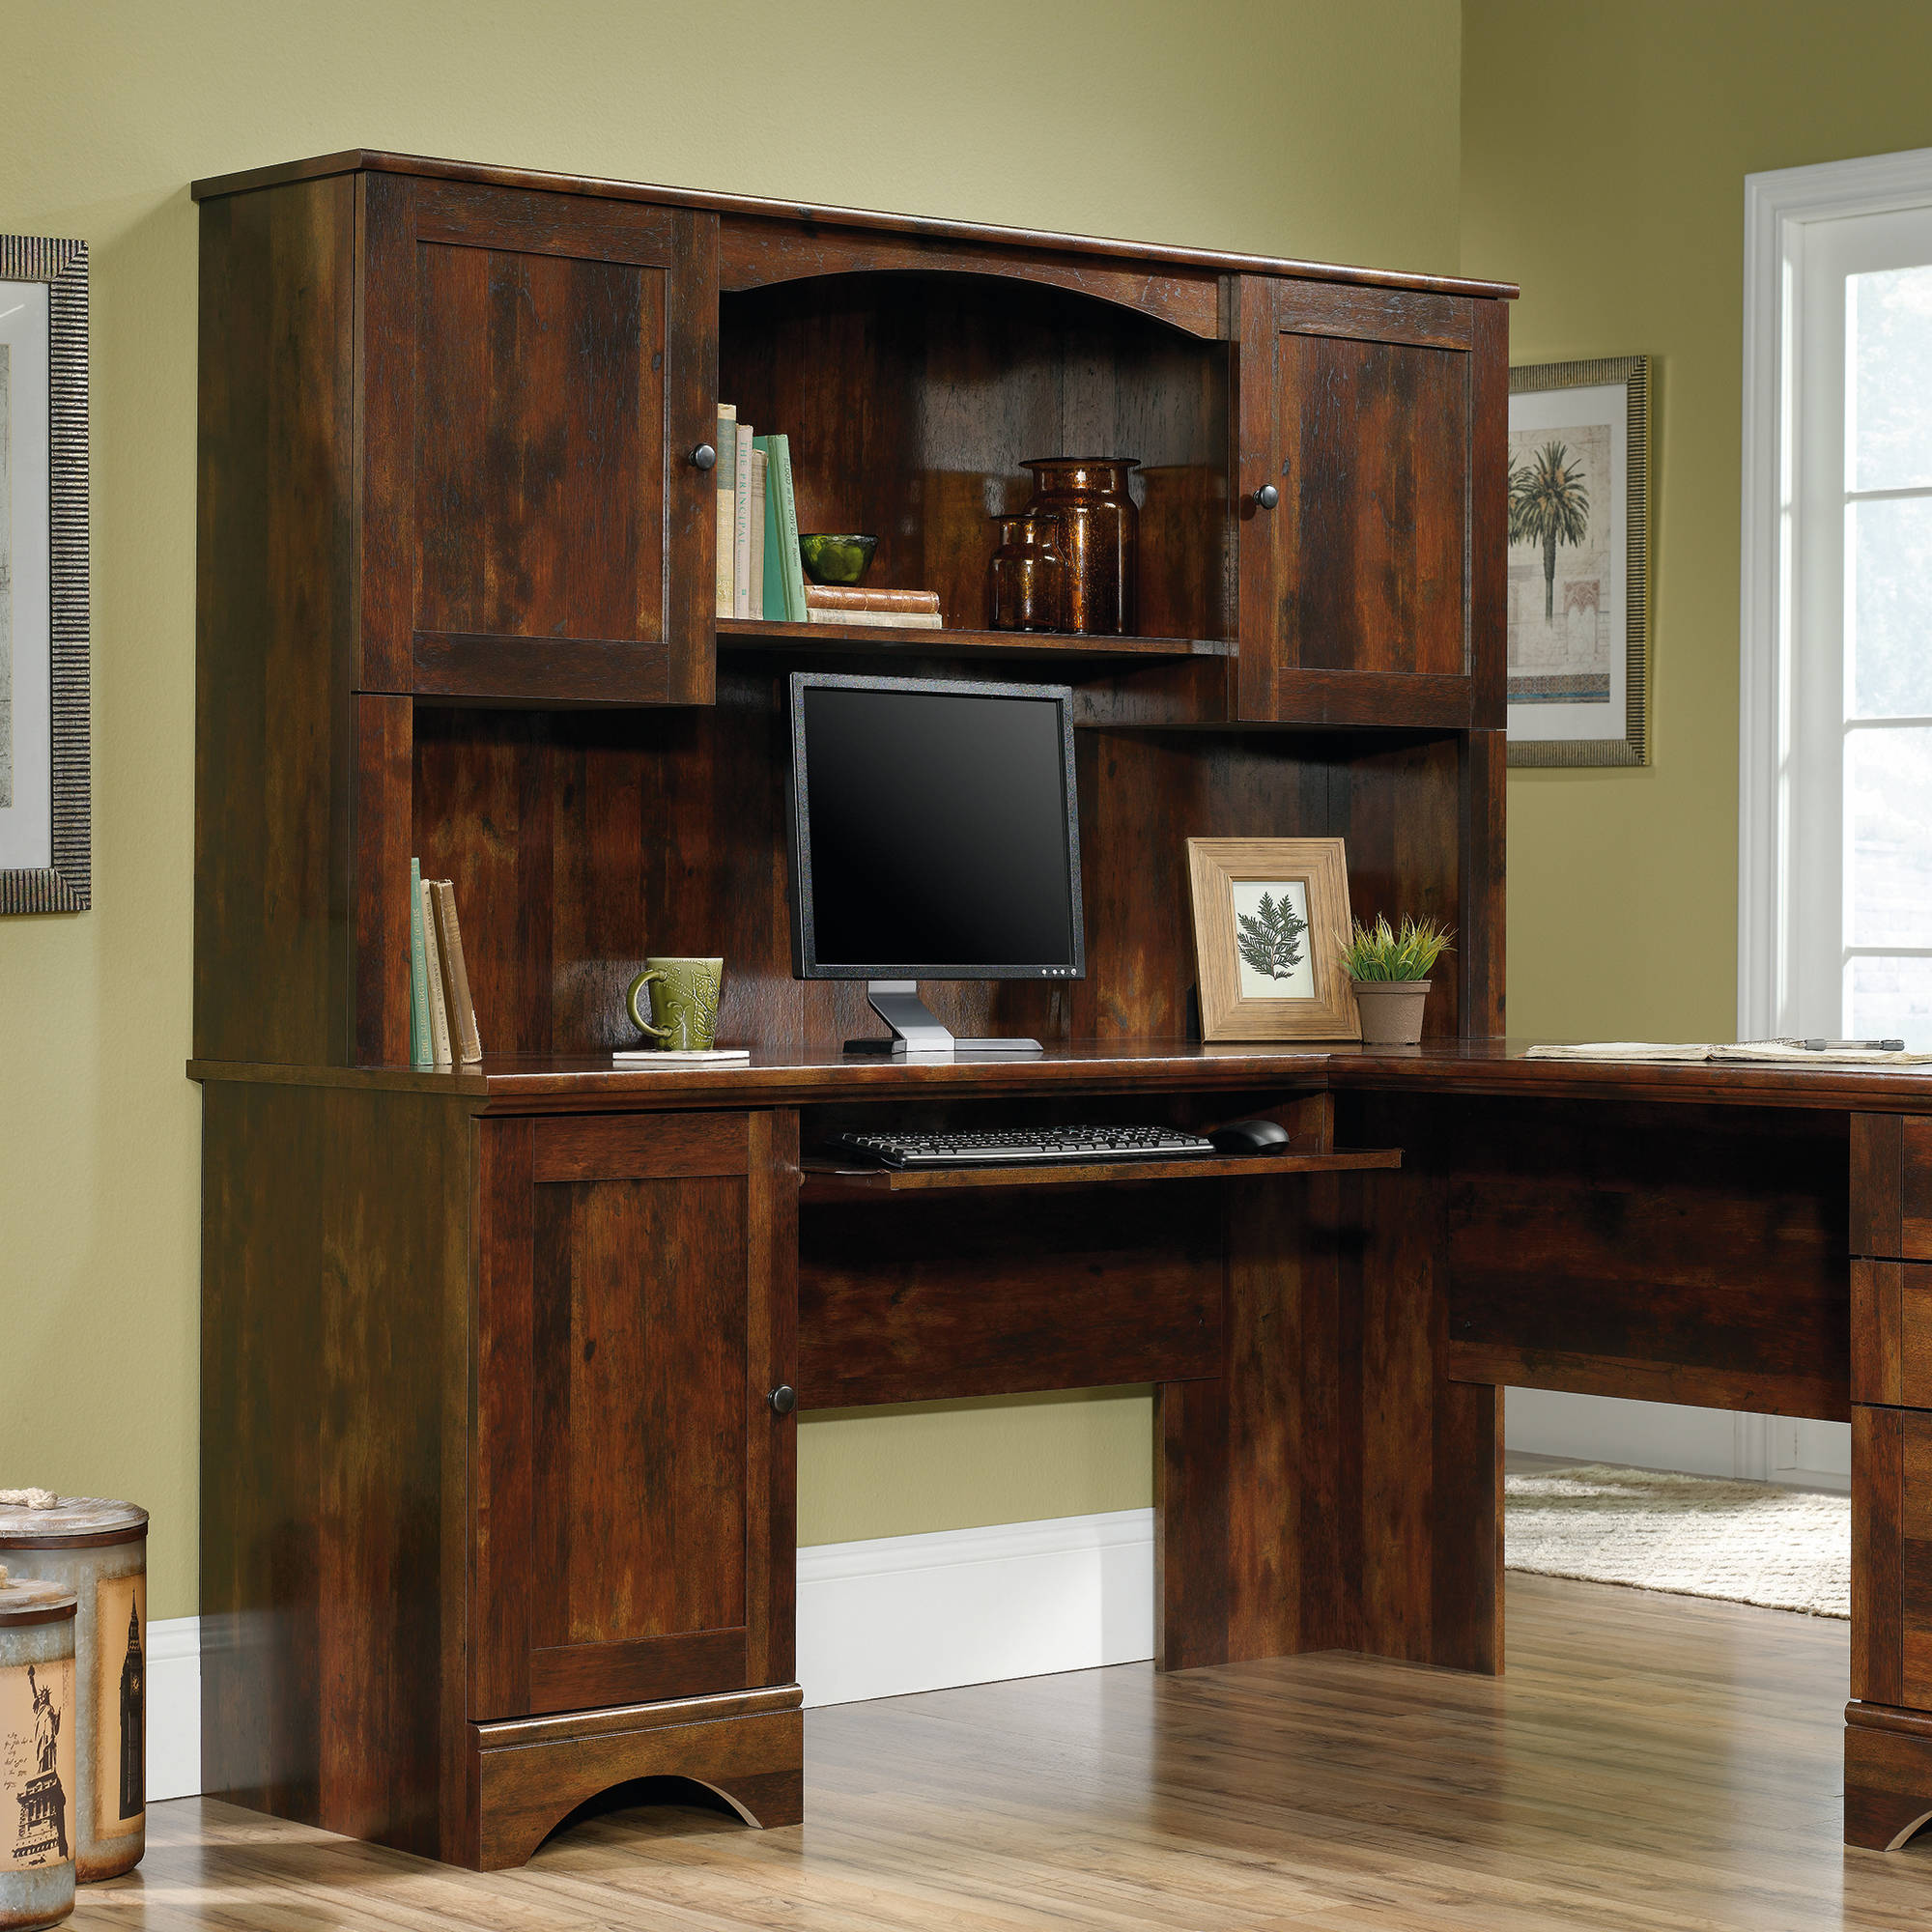 Sauder Harbor View L-Shaped Hutch, Curado Cherry Finish